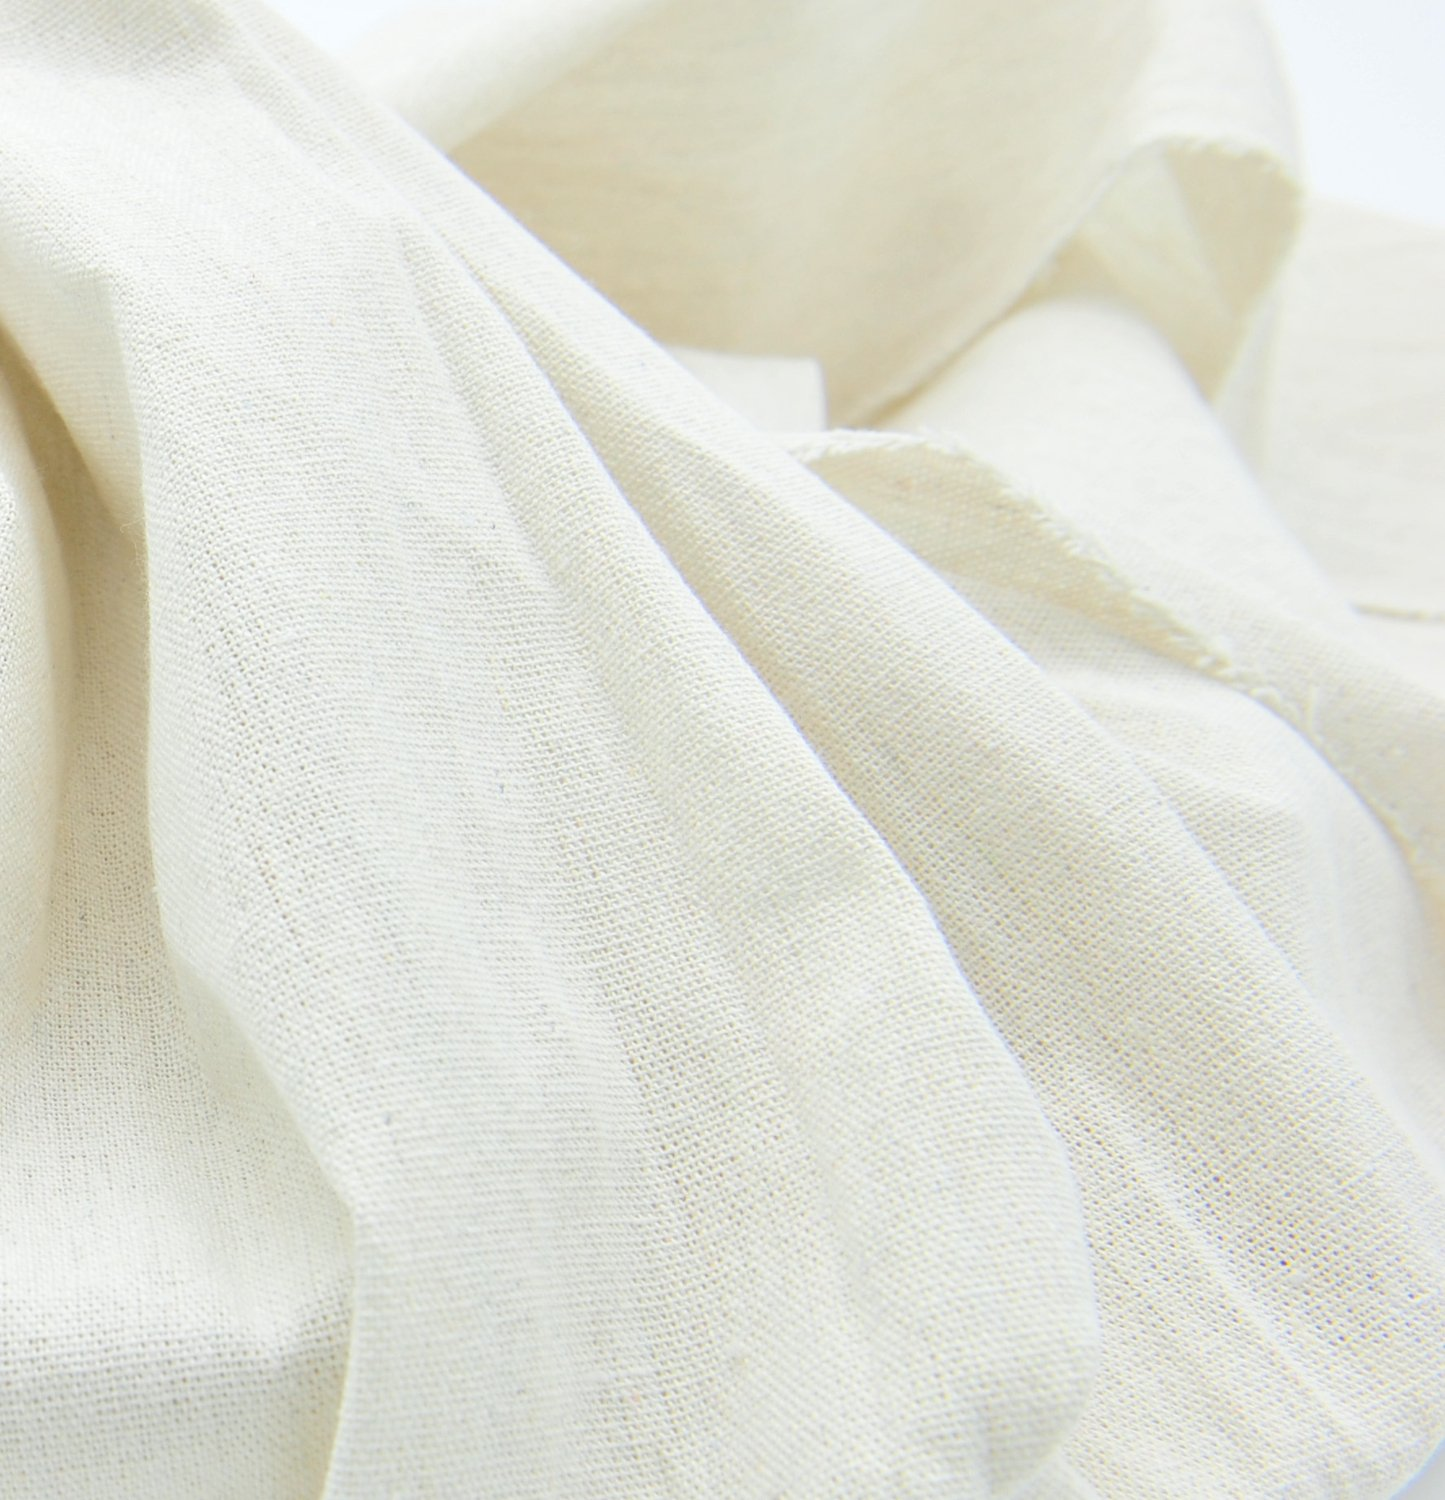 Ivory Linen Needlework Embroidery Fabric Cross Stitching Aida Cloth Rose Flavor 4336930961